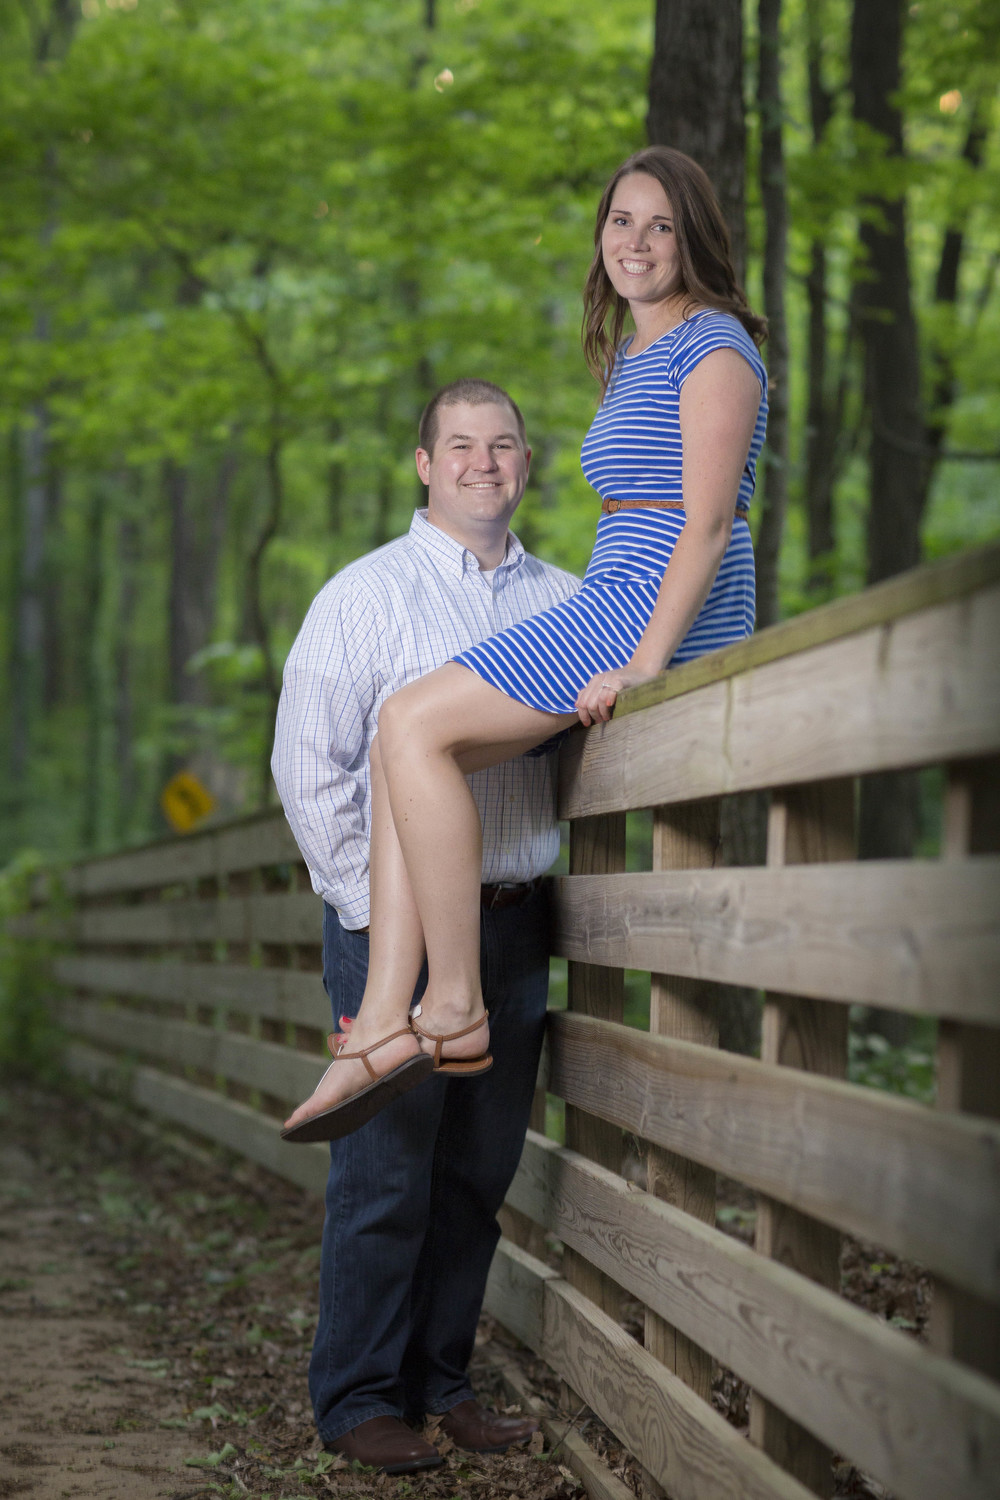 Fehrenbacher Engagement Photos 189.jpg